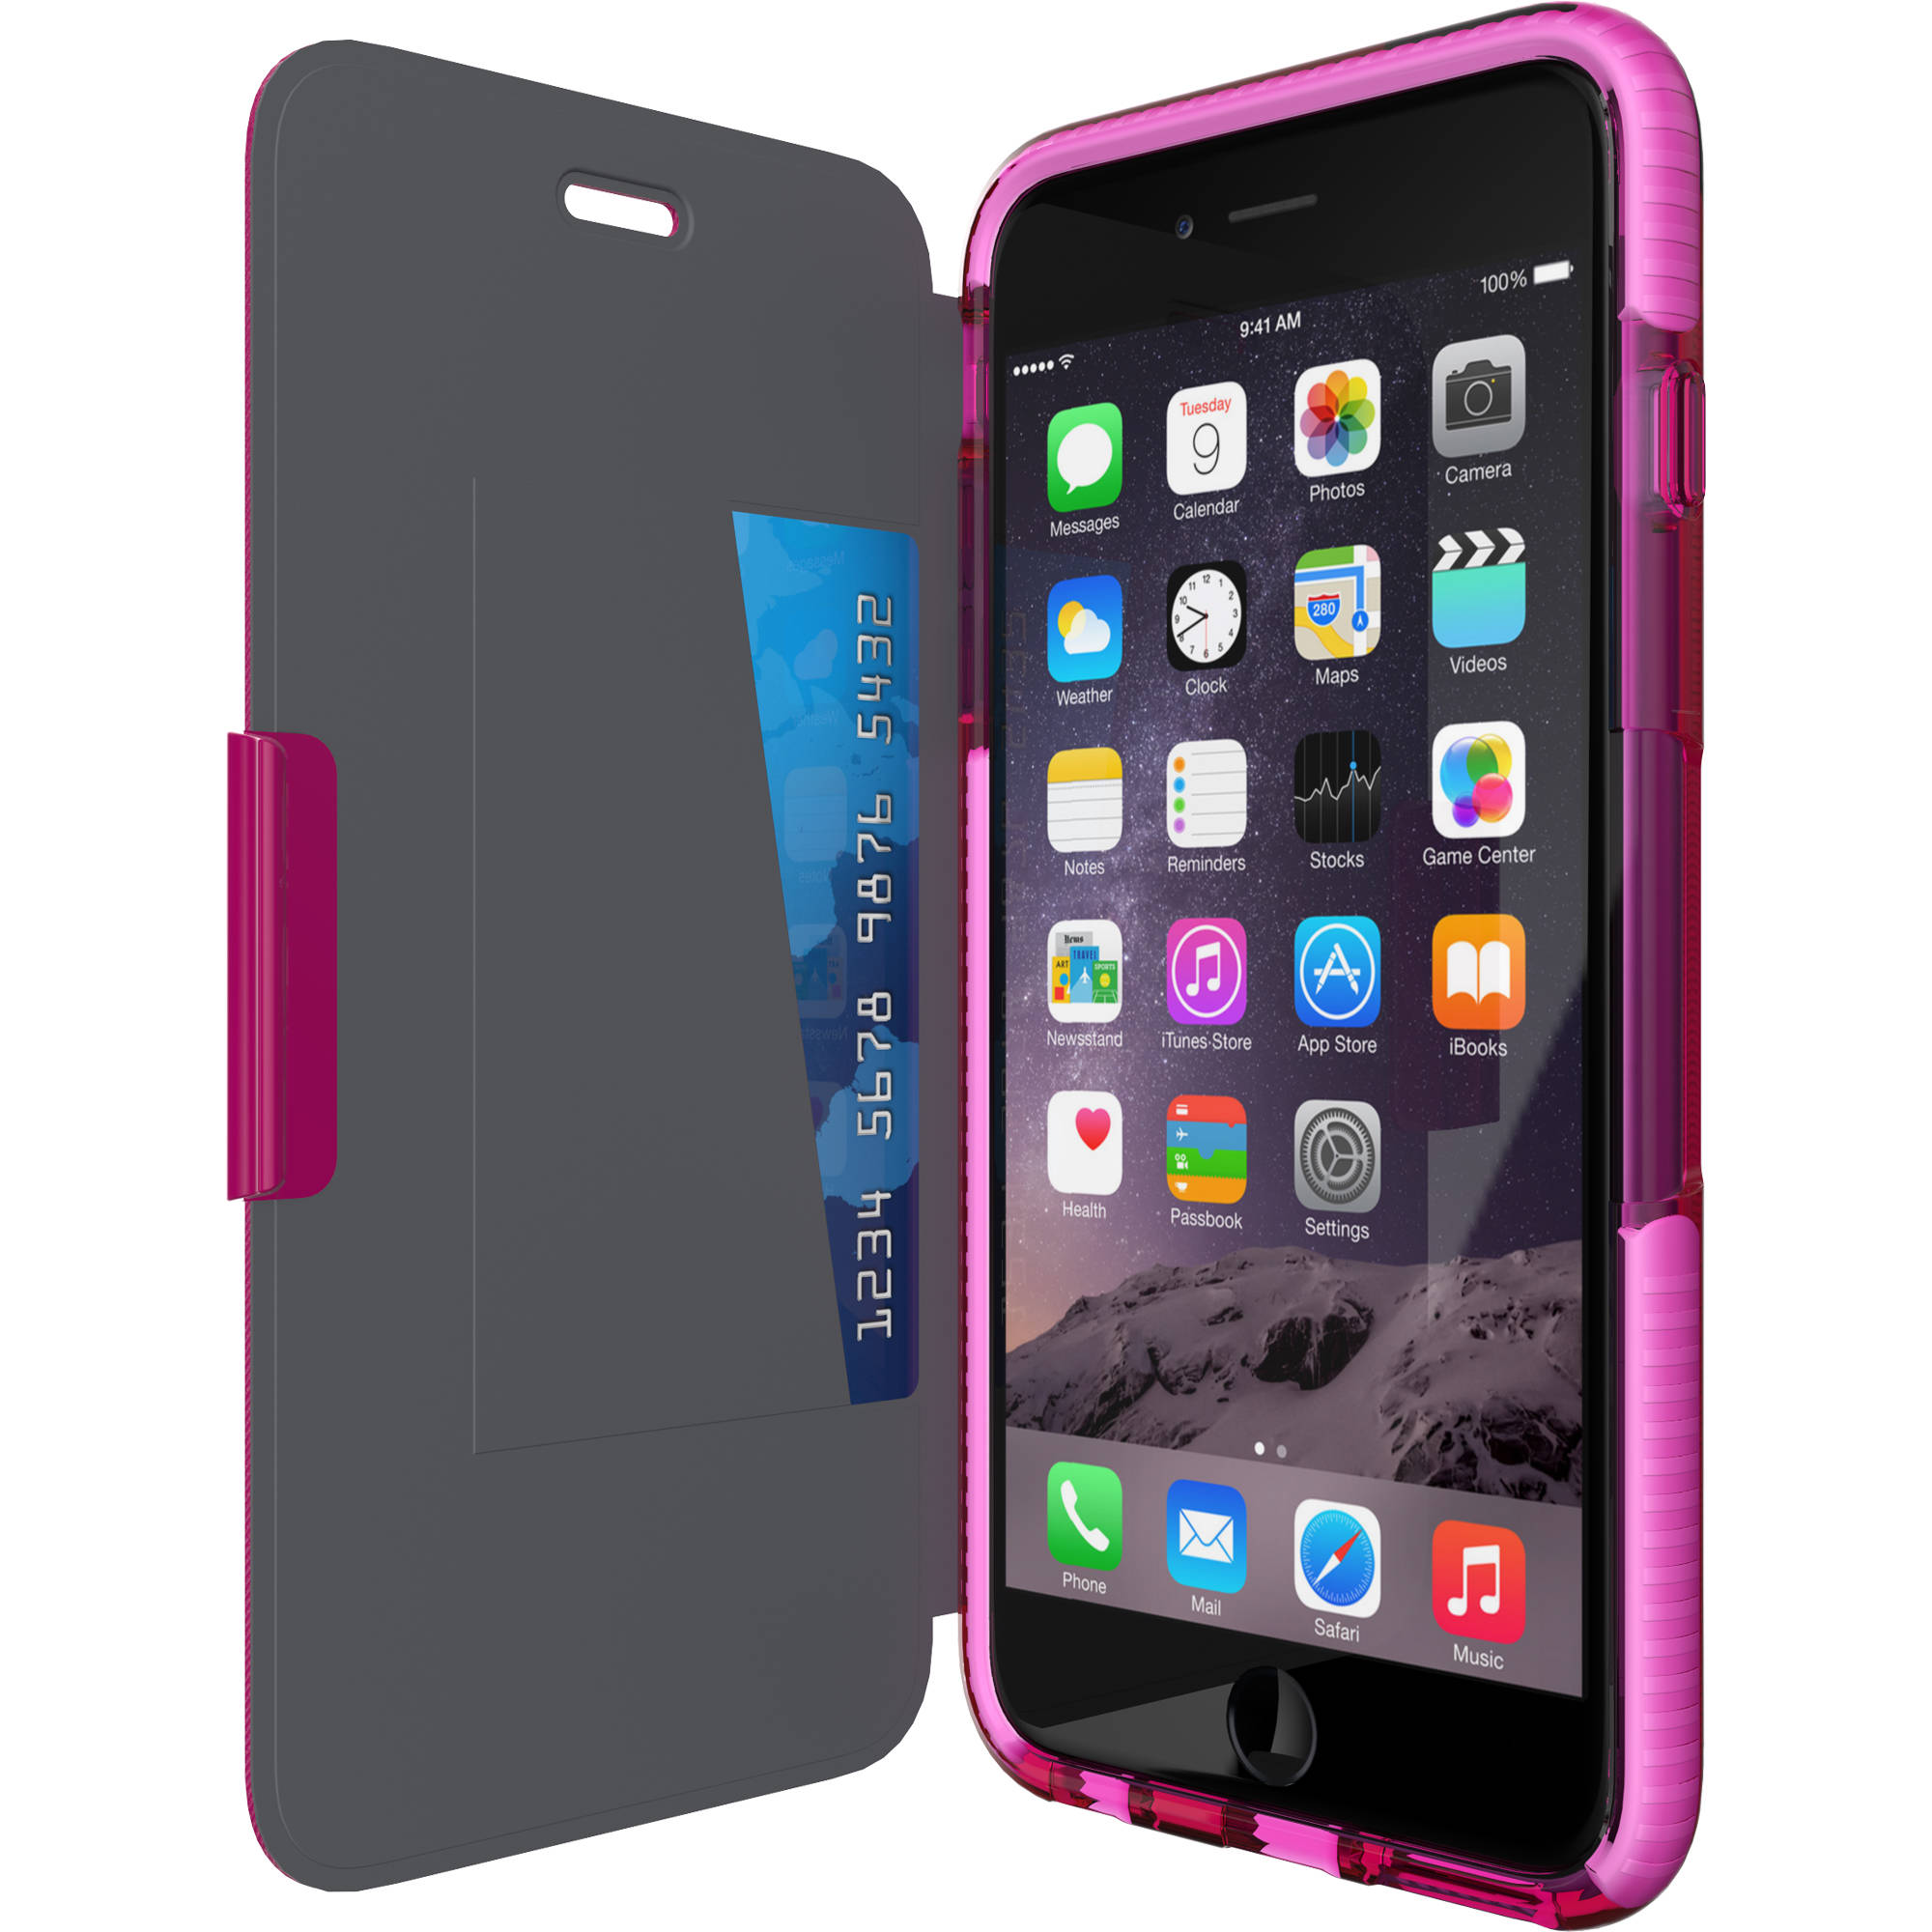 brand new bb77f 2cc80 Tech21 Evo Wallet Case for iPhone 6 Plus (Pink)